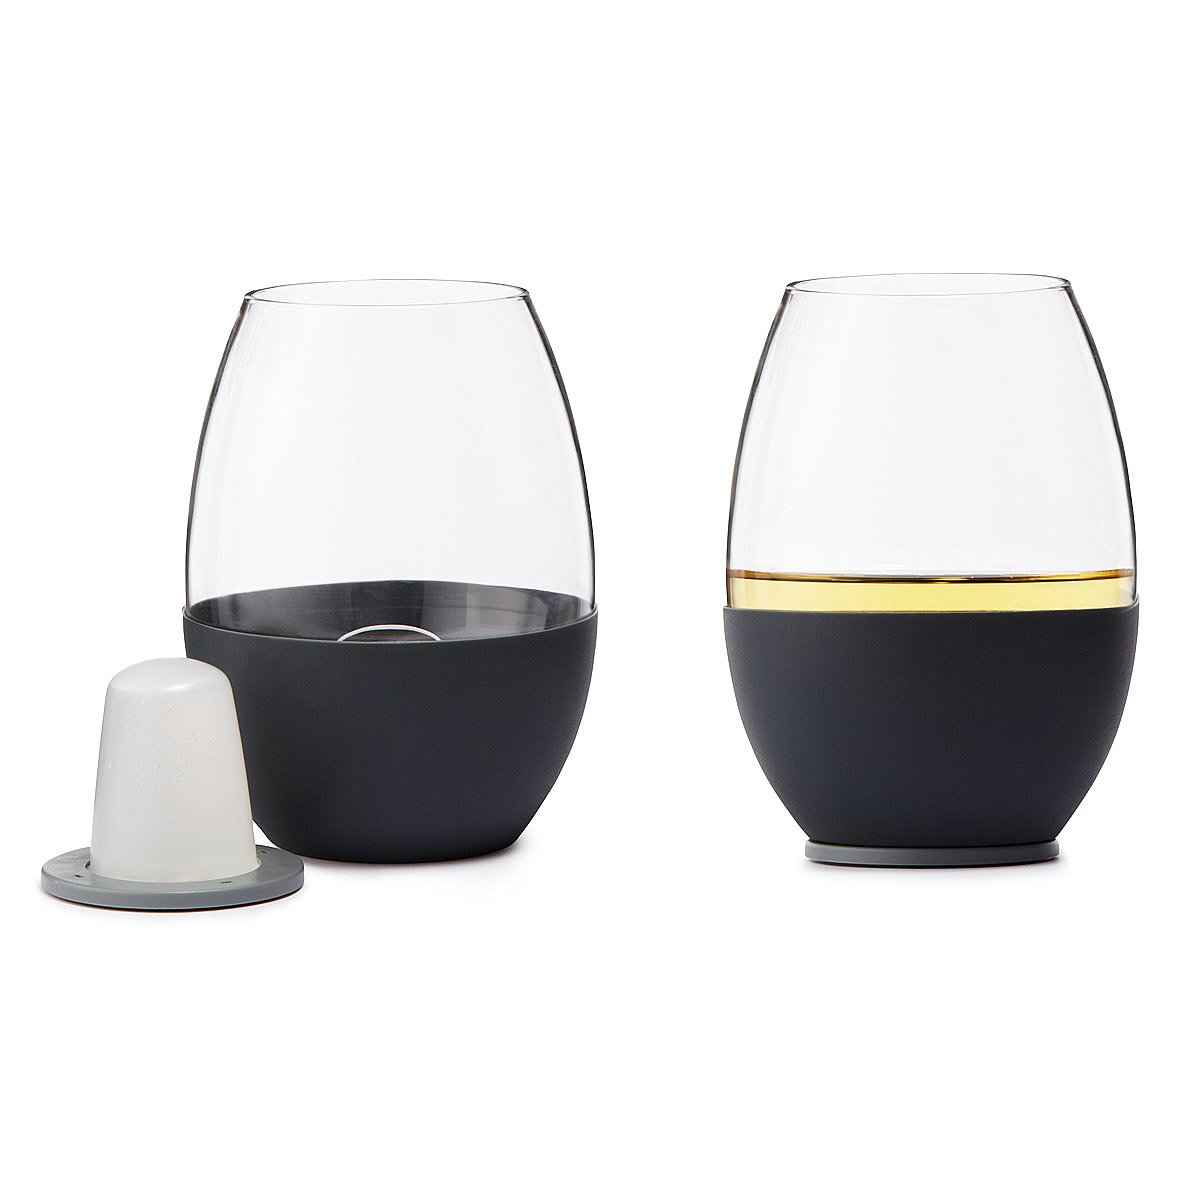 7 Deadly Sins Wine Glasses Gifts For Wine Lovers Wine Related Gifts Uncommongoods